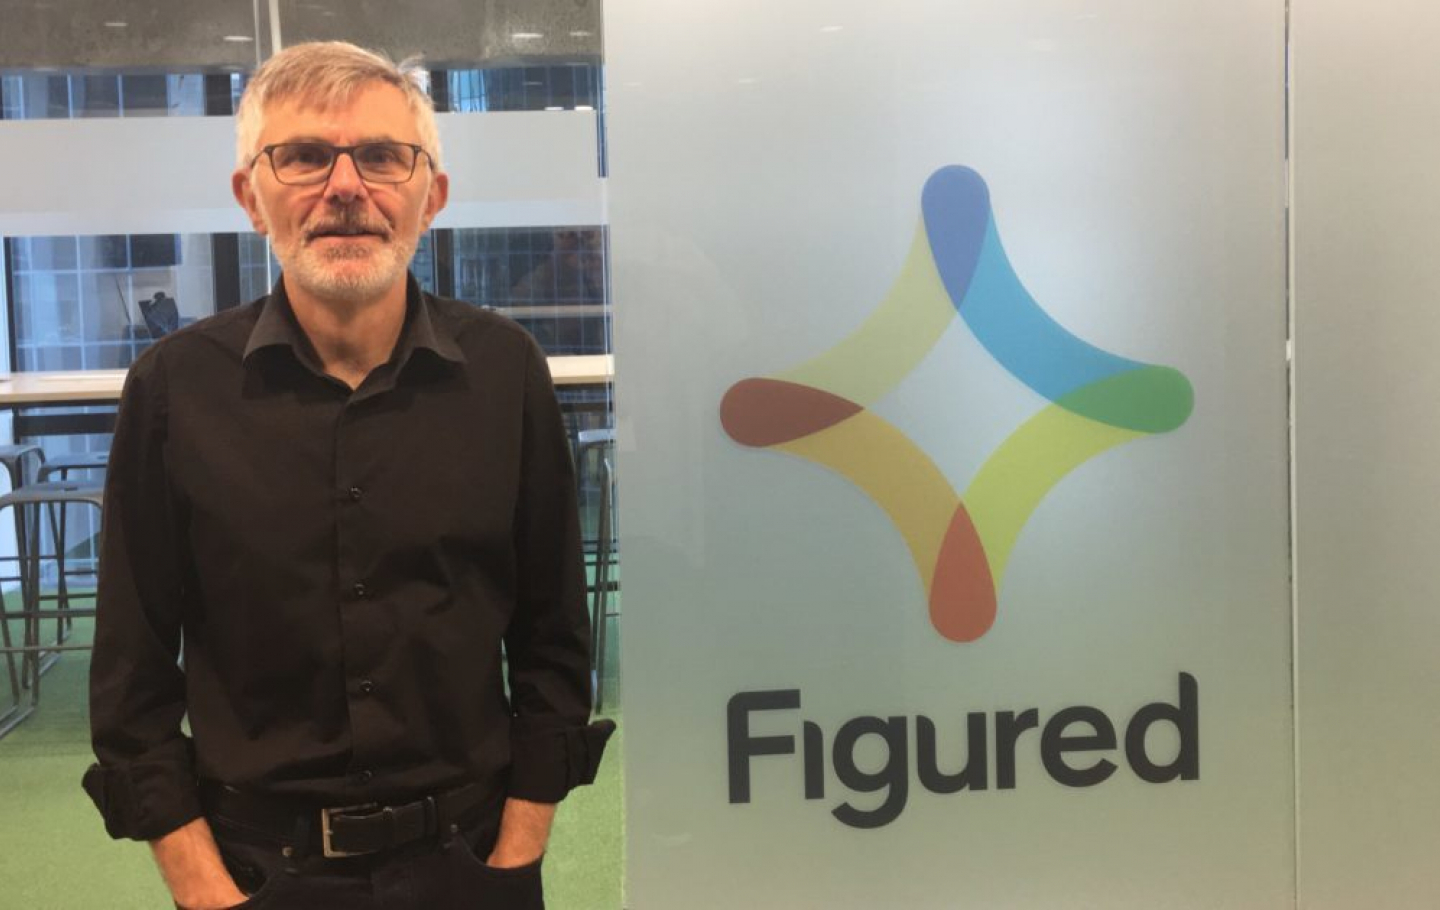 Figured announces new CEO, Dave Dodds